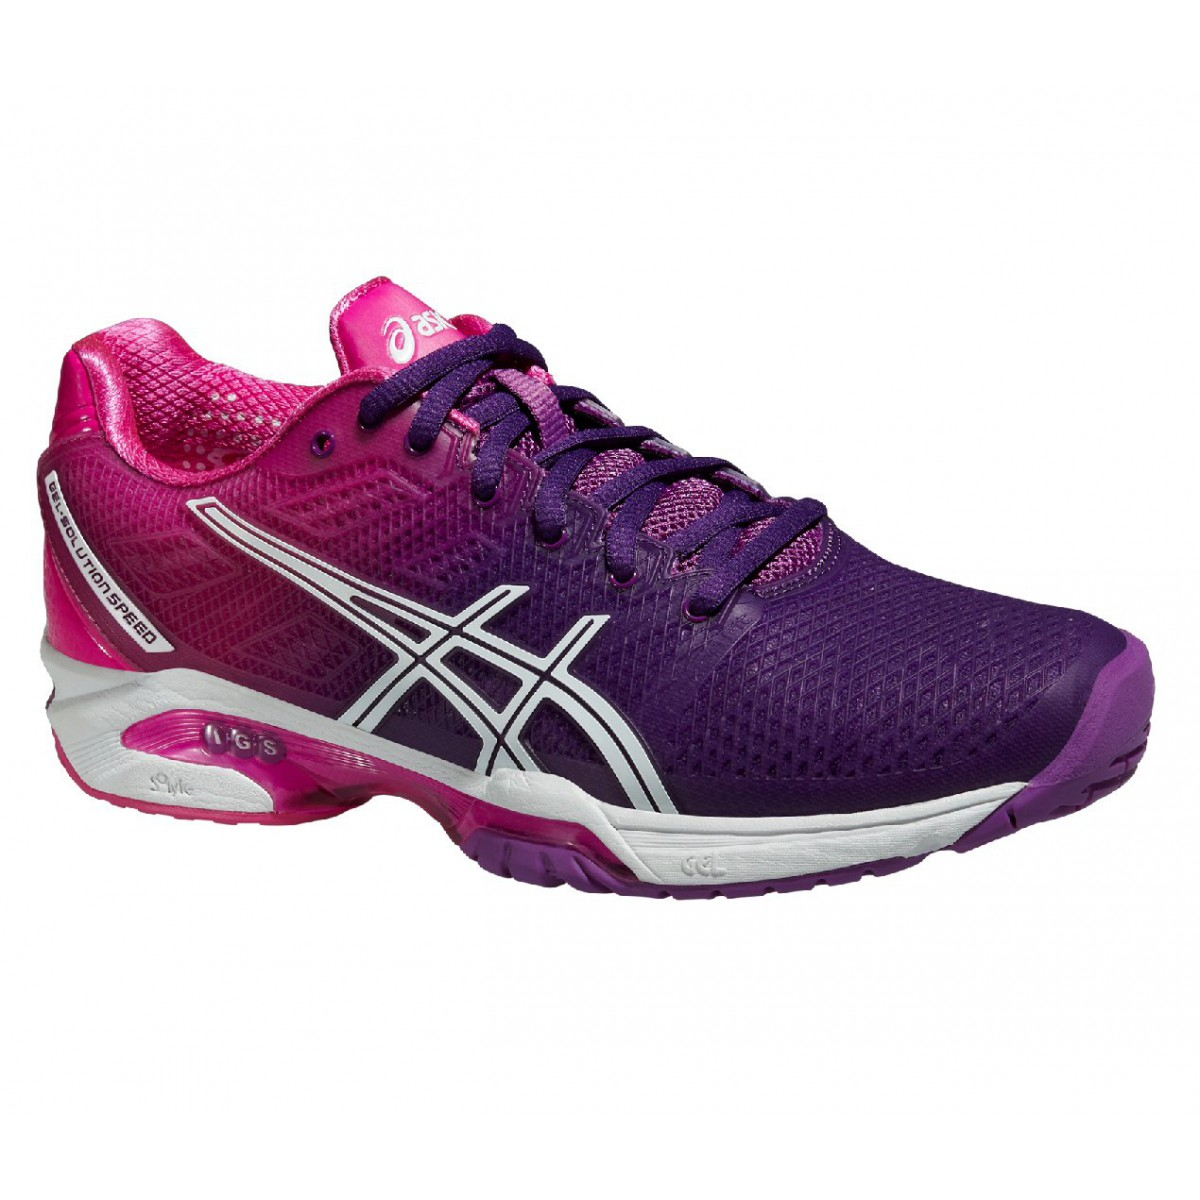 Asics Gel Solution Speed 2 hotpink Tennisschuhe Damen ...